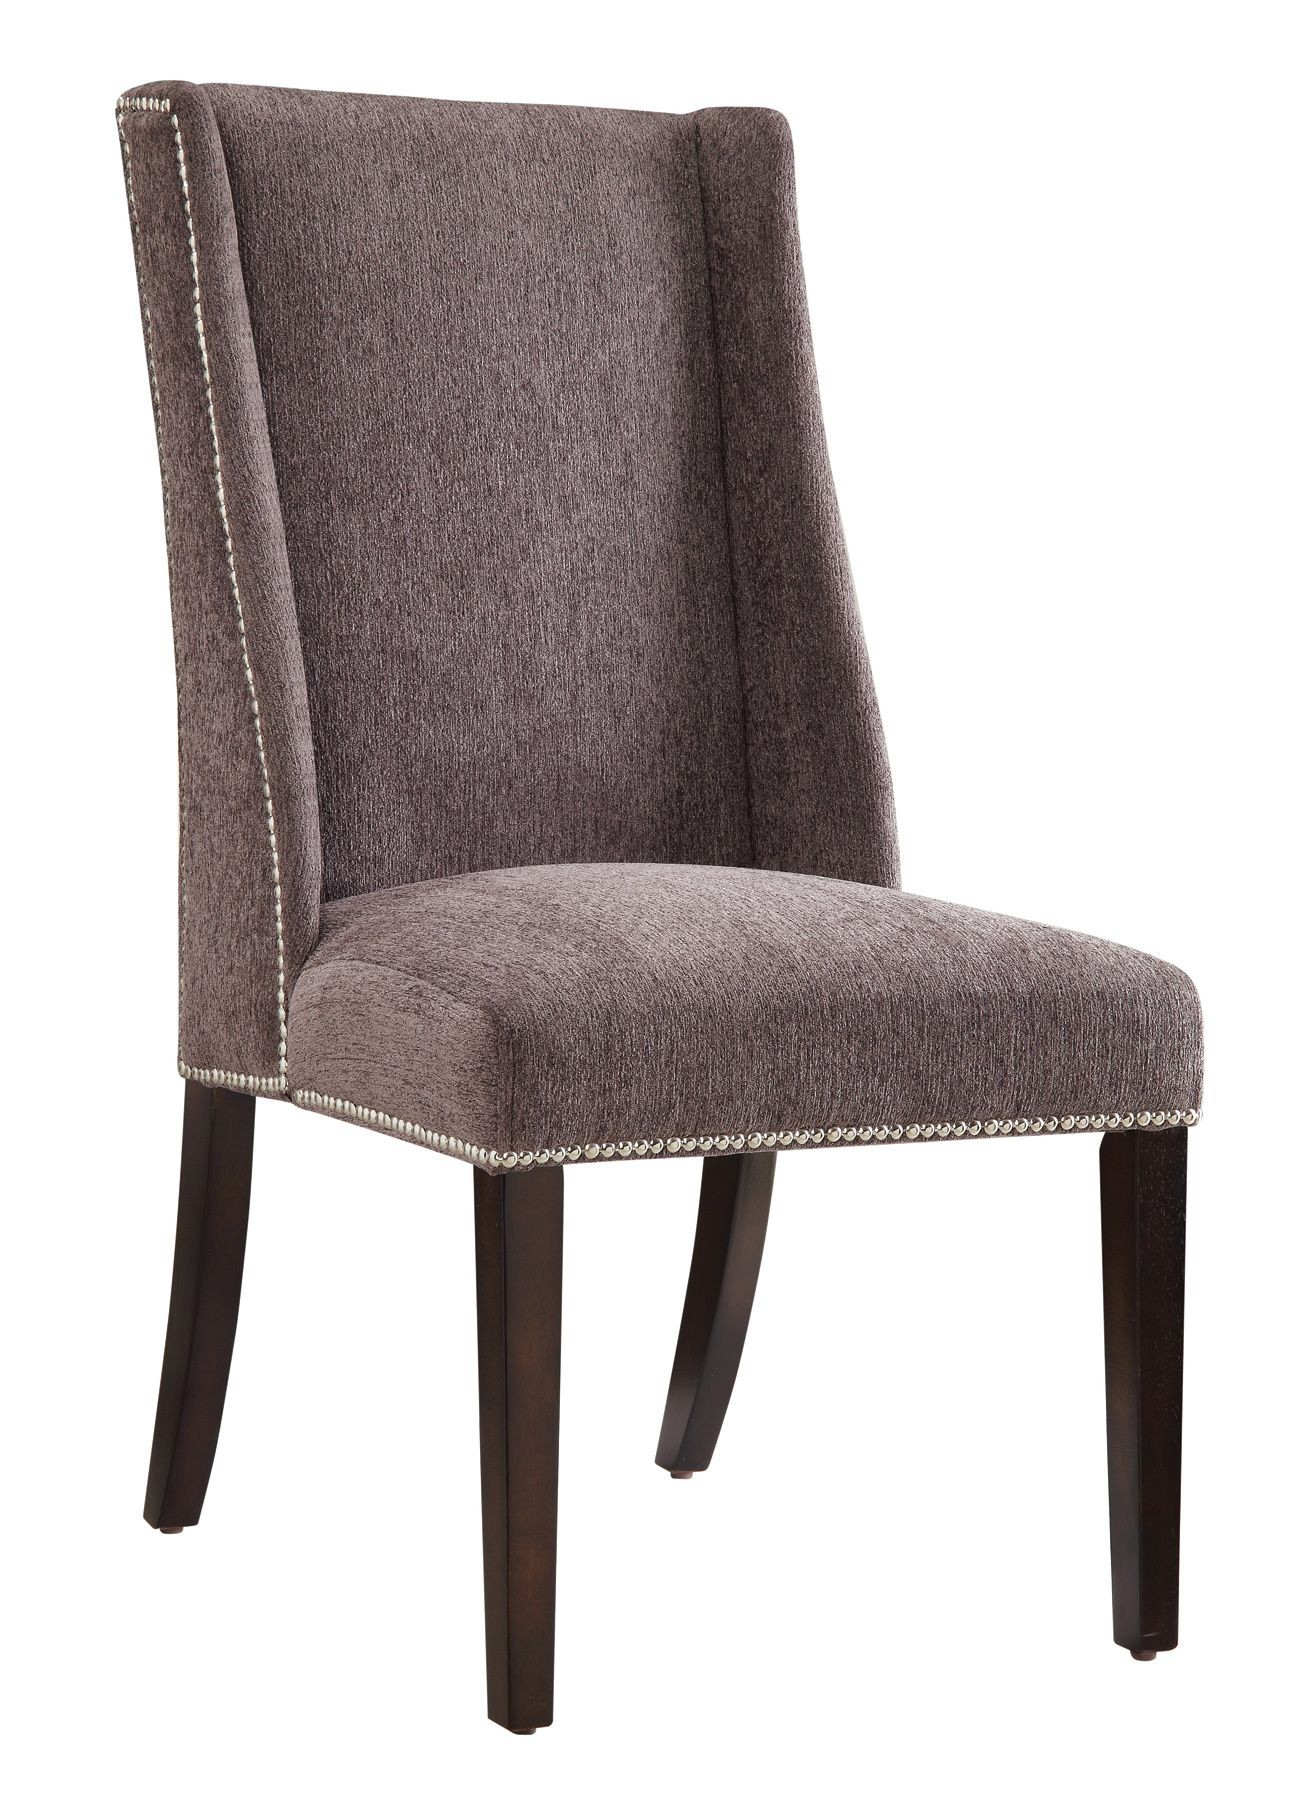 Grey Accent Chair Set Of 2 From Coaster